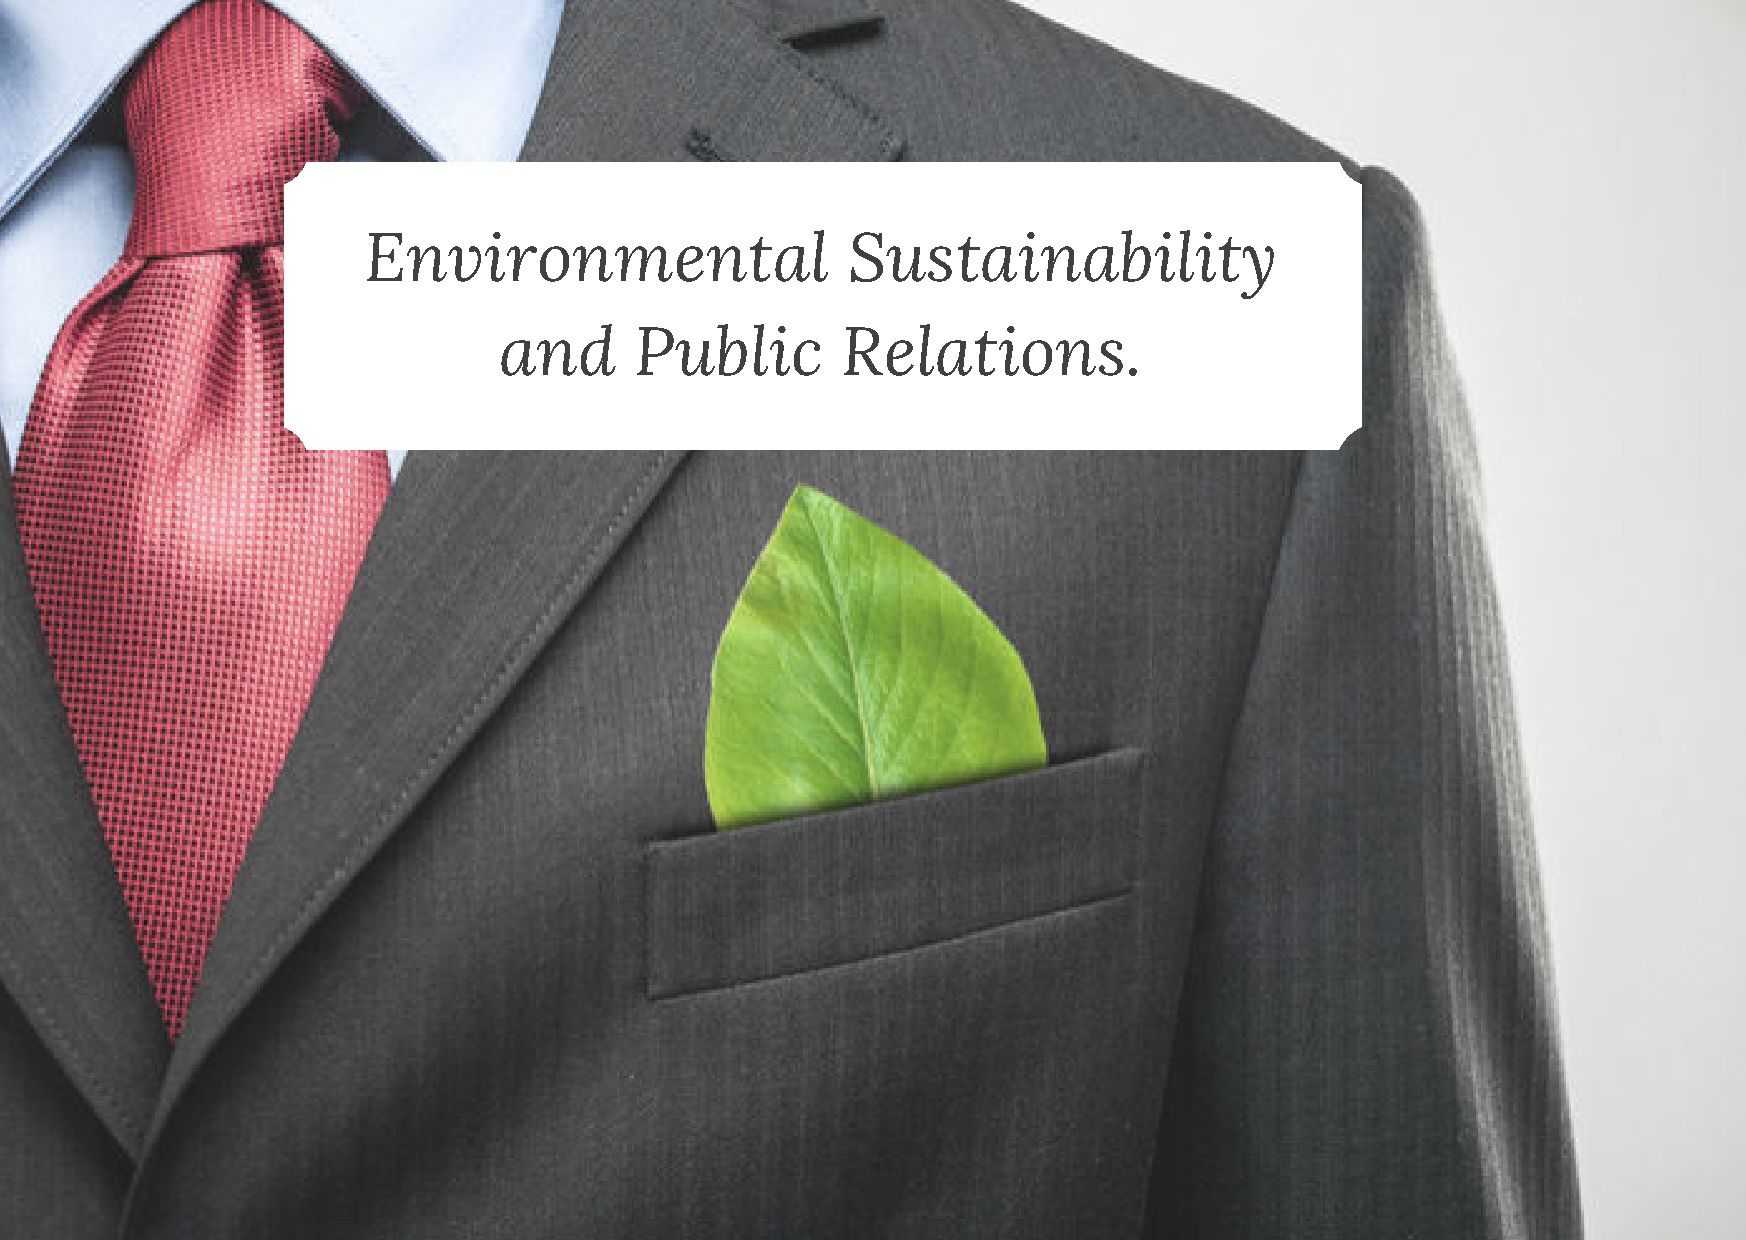 Environmental Sustainability, public relations | CSE, Sustainability Academy, sustainability reporting